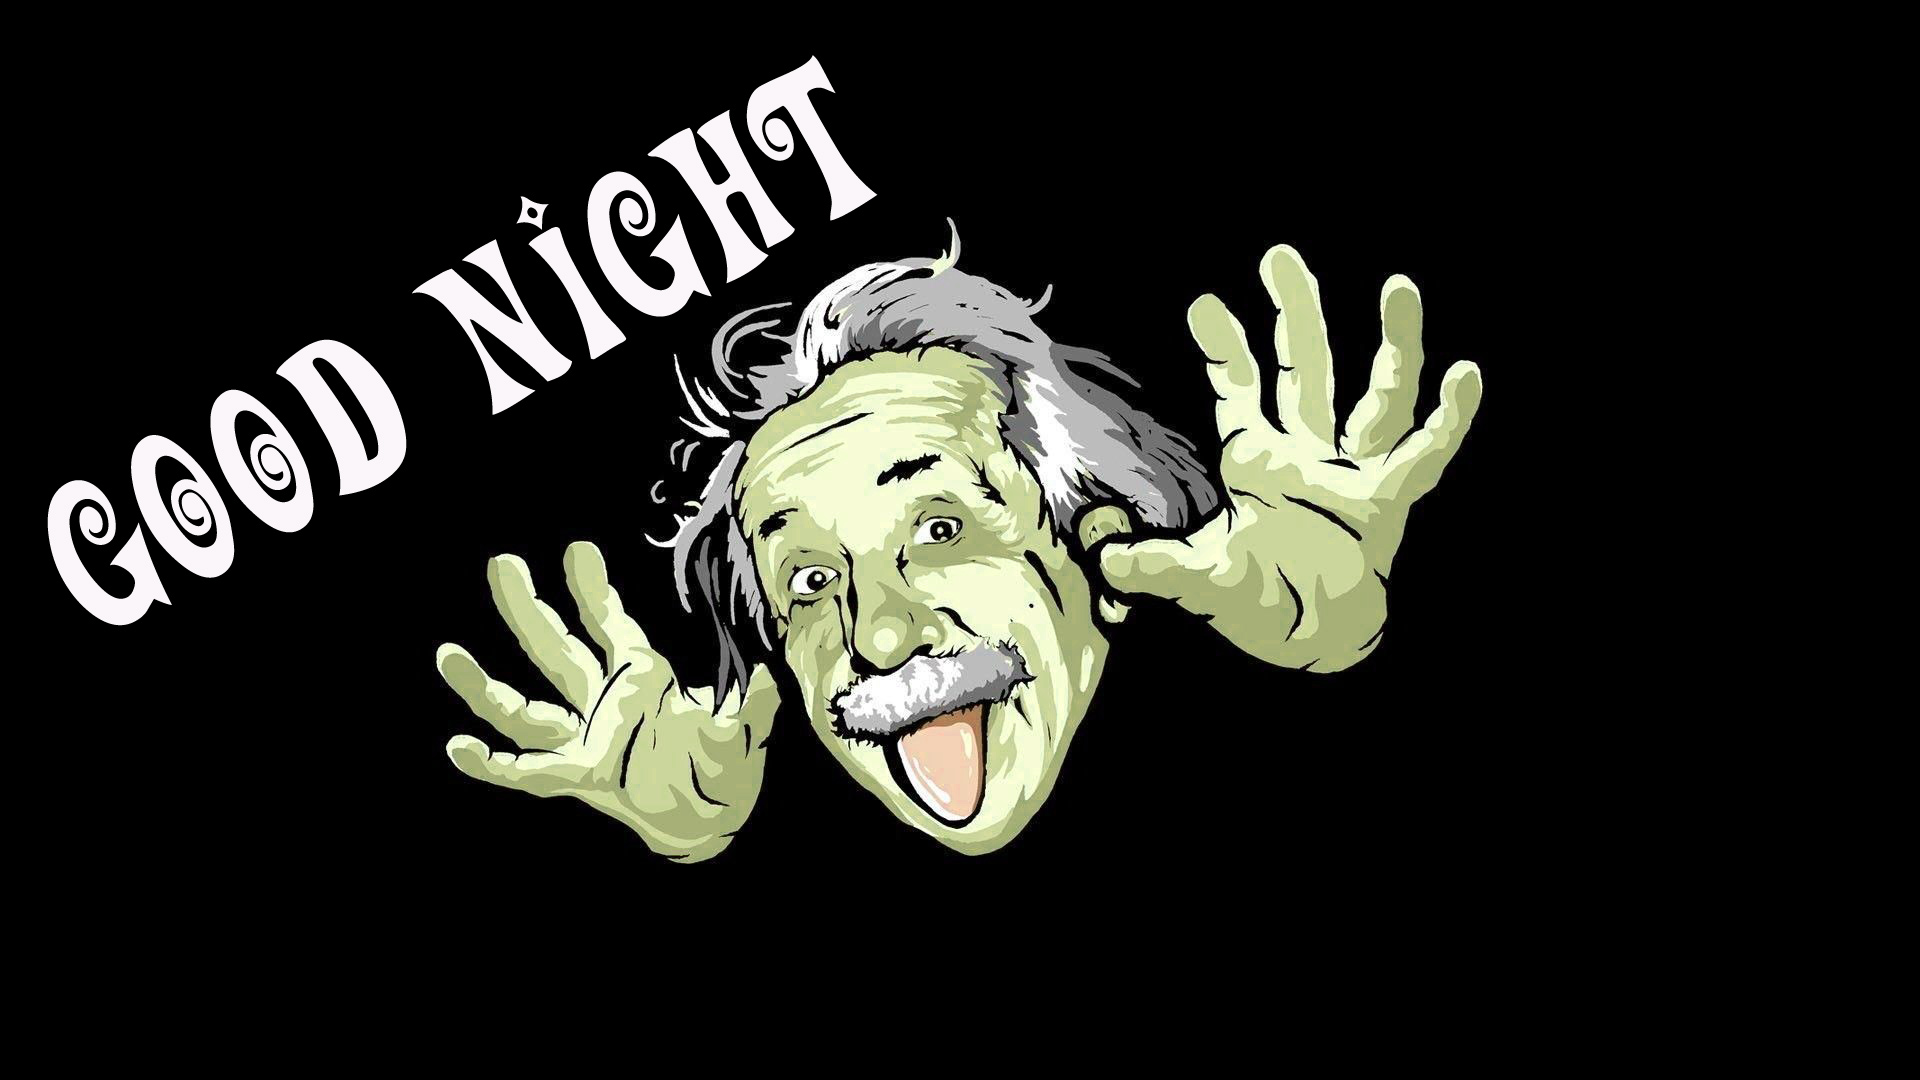 funny good night images Wallpaper Pics Free Download